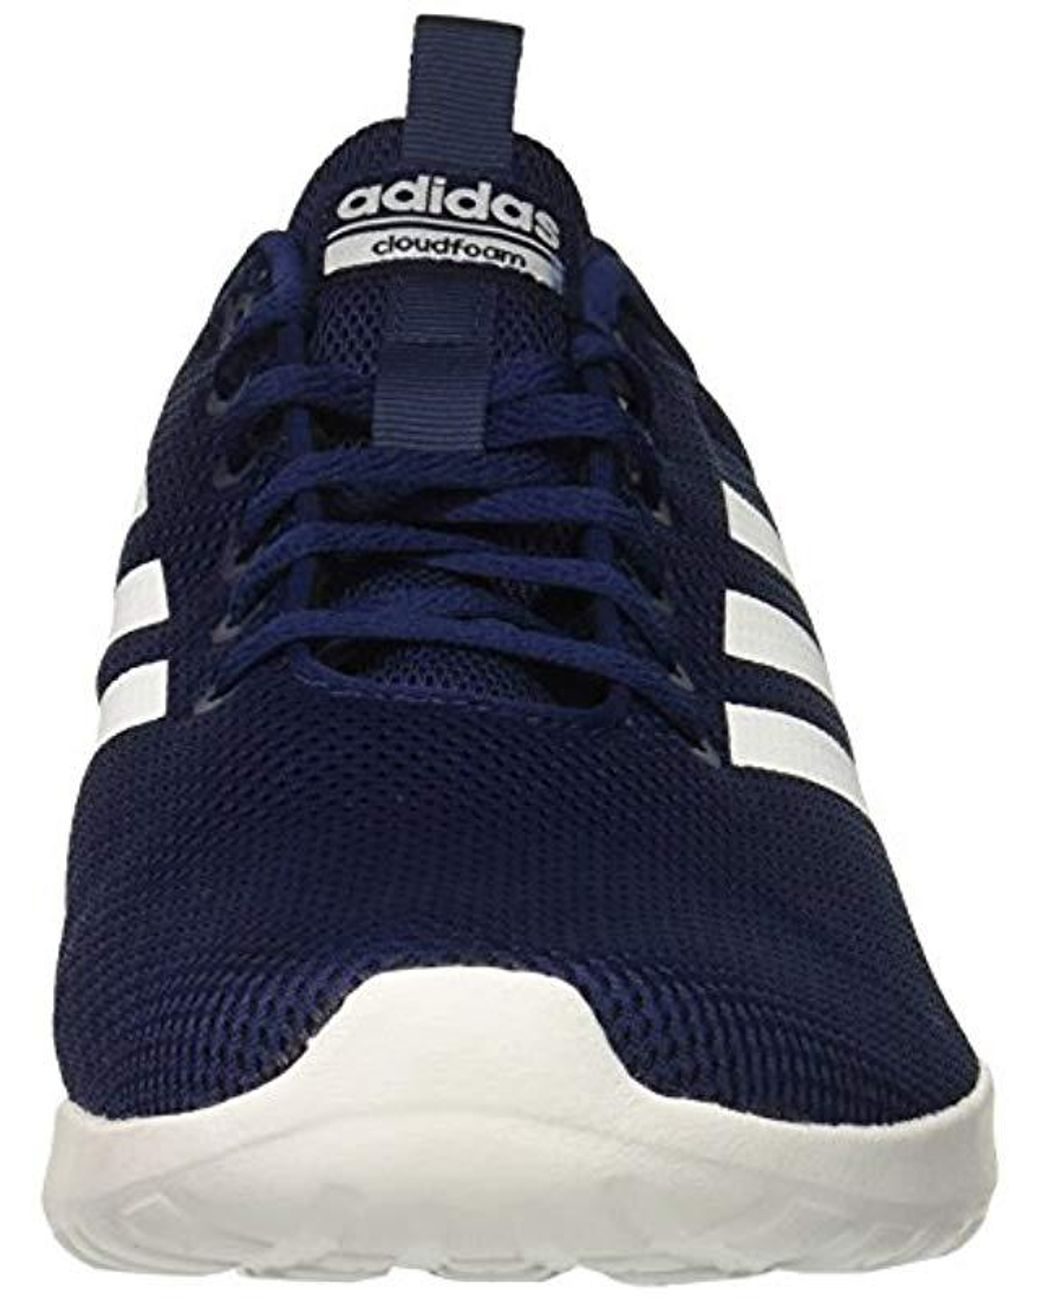 25b008938e Lyst - adidas Lite Racer Cln Fitness Shoes in Blue for Men